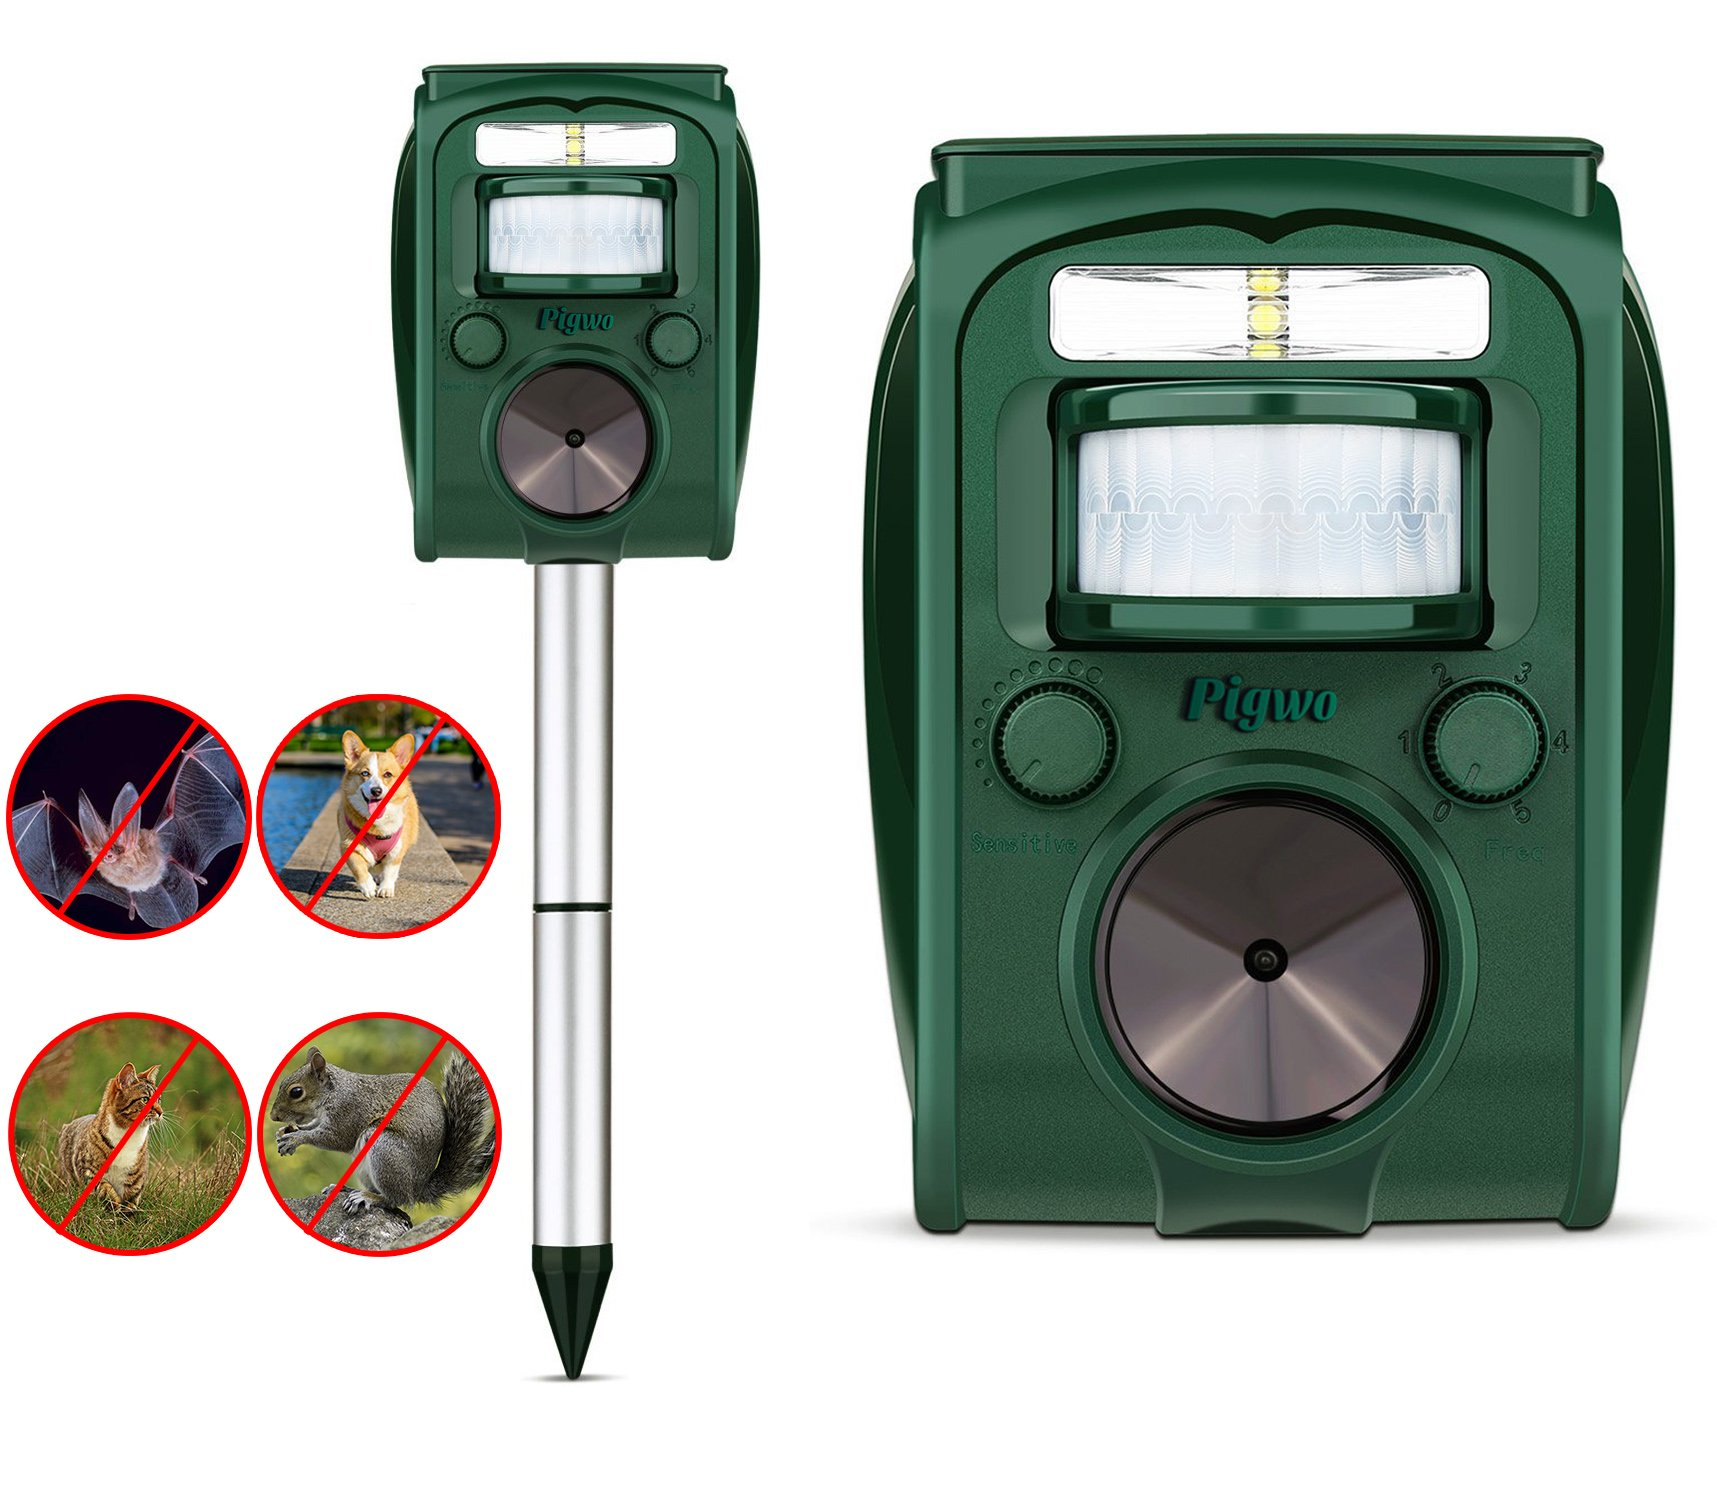 PIGWO Animal Repellent Ultrasonic Outdoor- Solar Powered- Waterproof- Rodent Repeller- Effective & Powerful with Motion Activated -Repel All Pests Animals -Fox,Cat,Dog,Deer,Squirrels,Raccoon & More